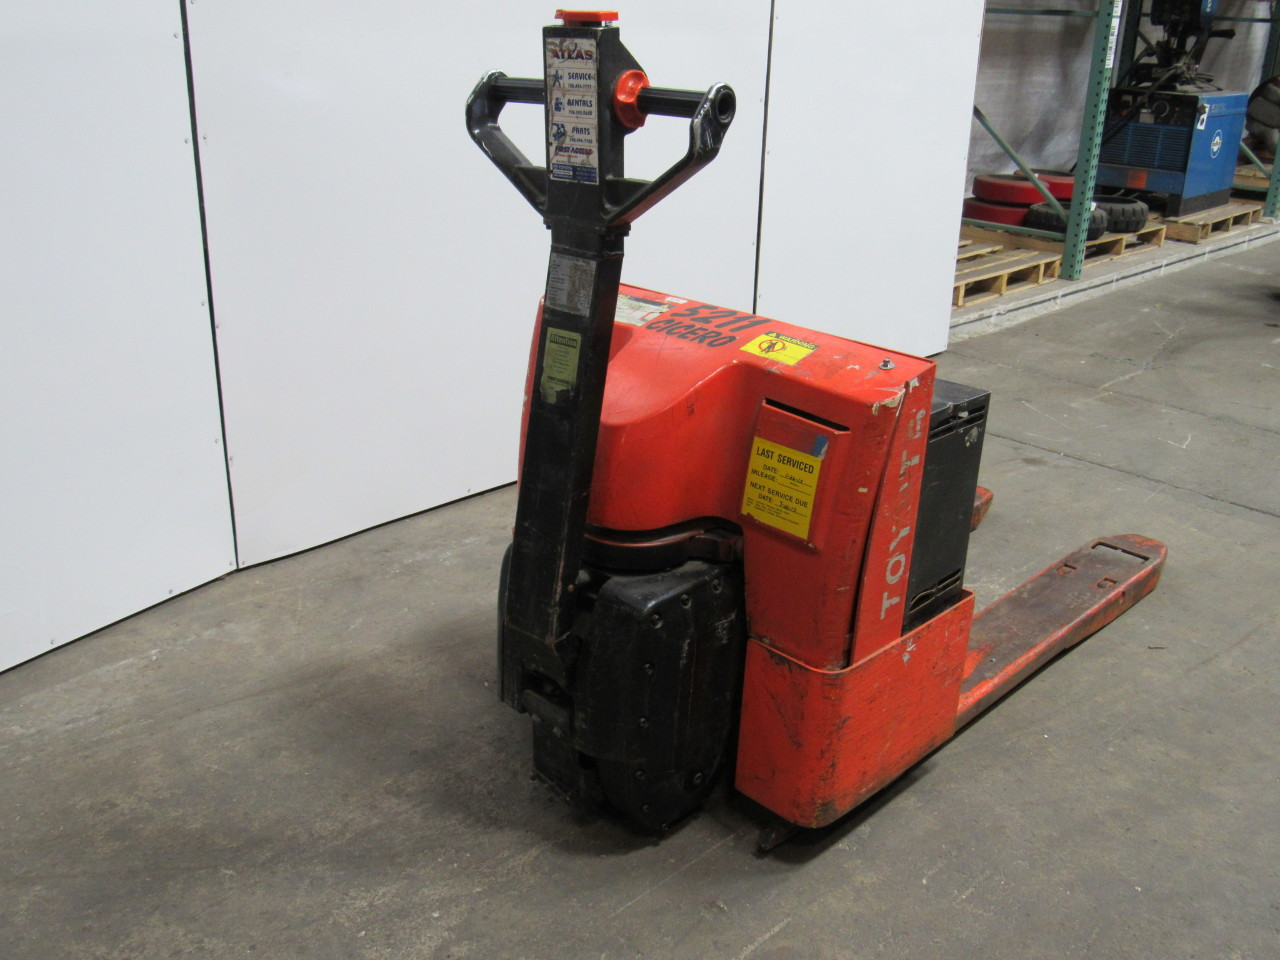 Toyota 6hbw20 Electric Pallet Jack Walkie Walk Behind